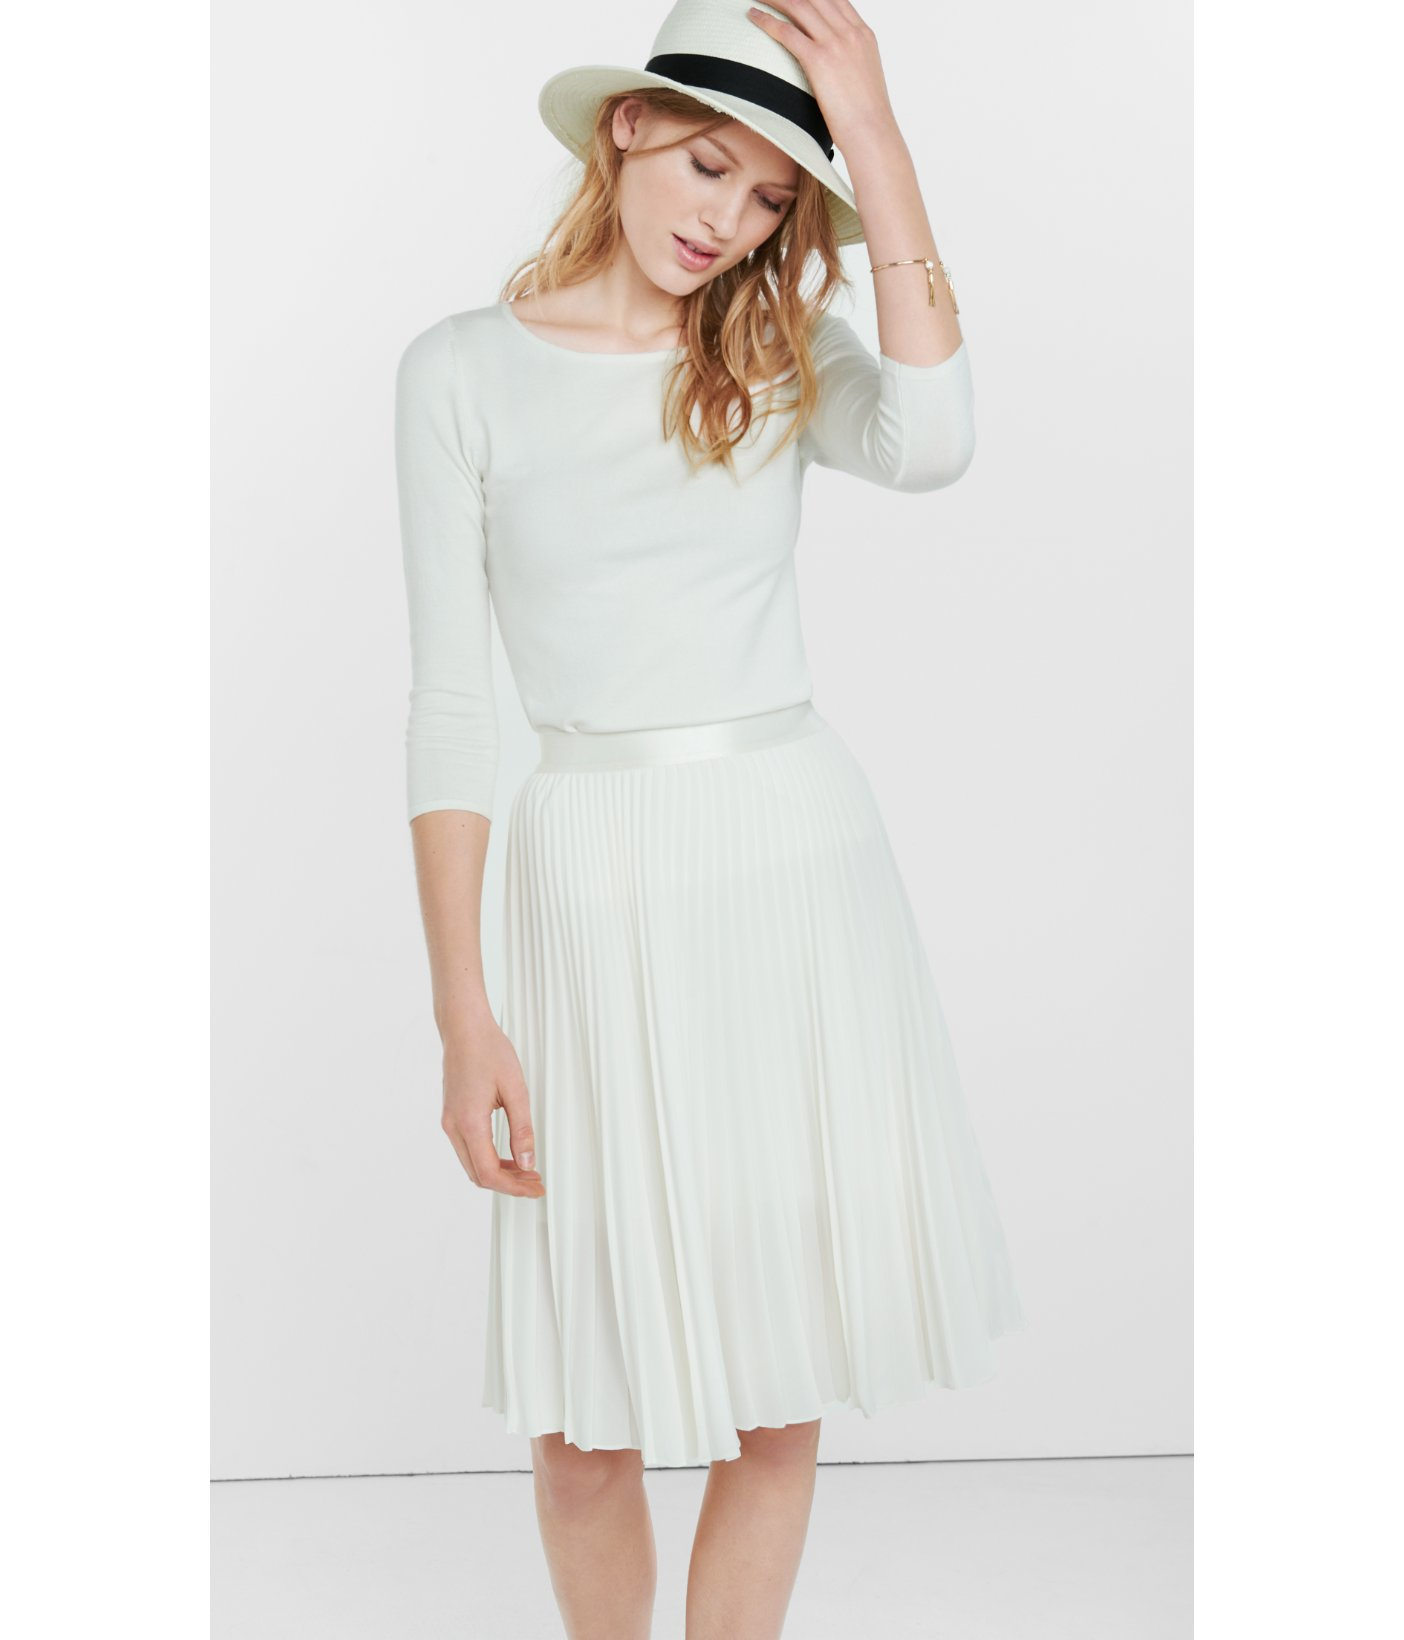 White Pleated Midi Skirt Photo Album - Watch Out, There's a ...